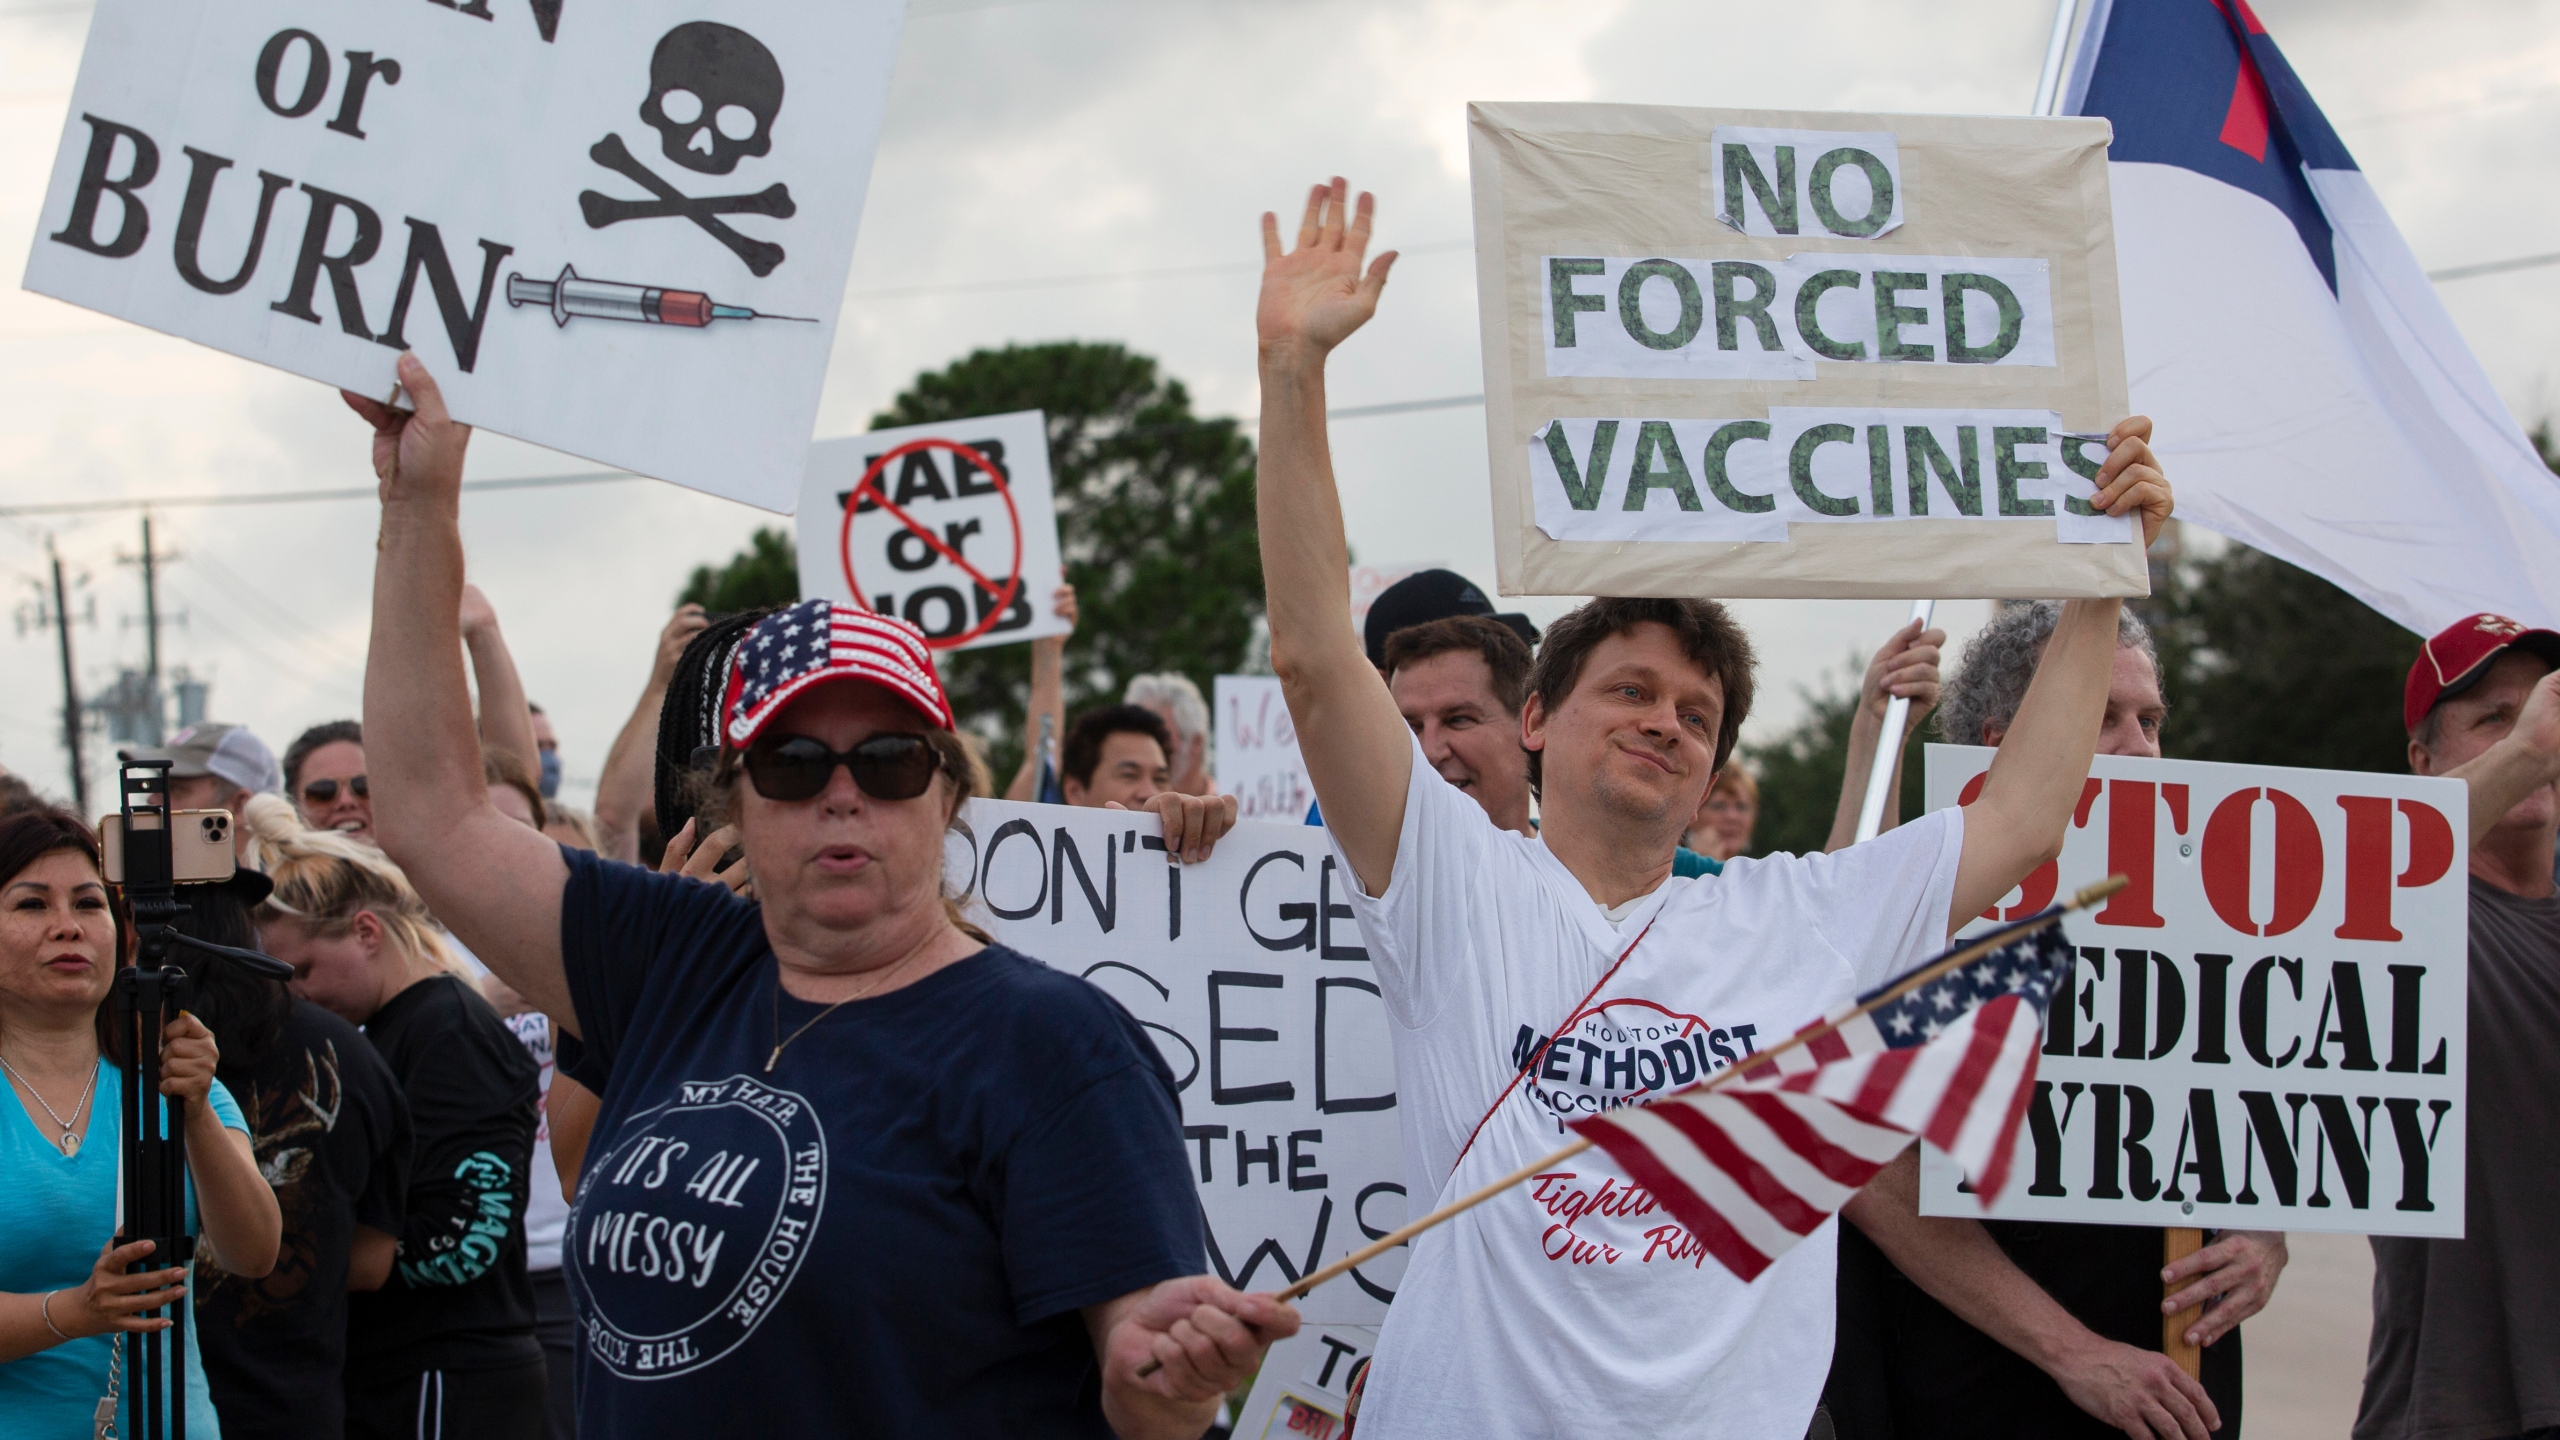 In this June 7, 2021, file photo, demonstrators at Houston Methodist Baytown Hospital in Baytown, Texas, wave at cars that honk at them to support their protest against a policy that says hospital employees must get vaccinated against COVID-19 or lose their jobs. (Yi-Chin Lee/Houston Chronicle via AP)